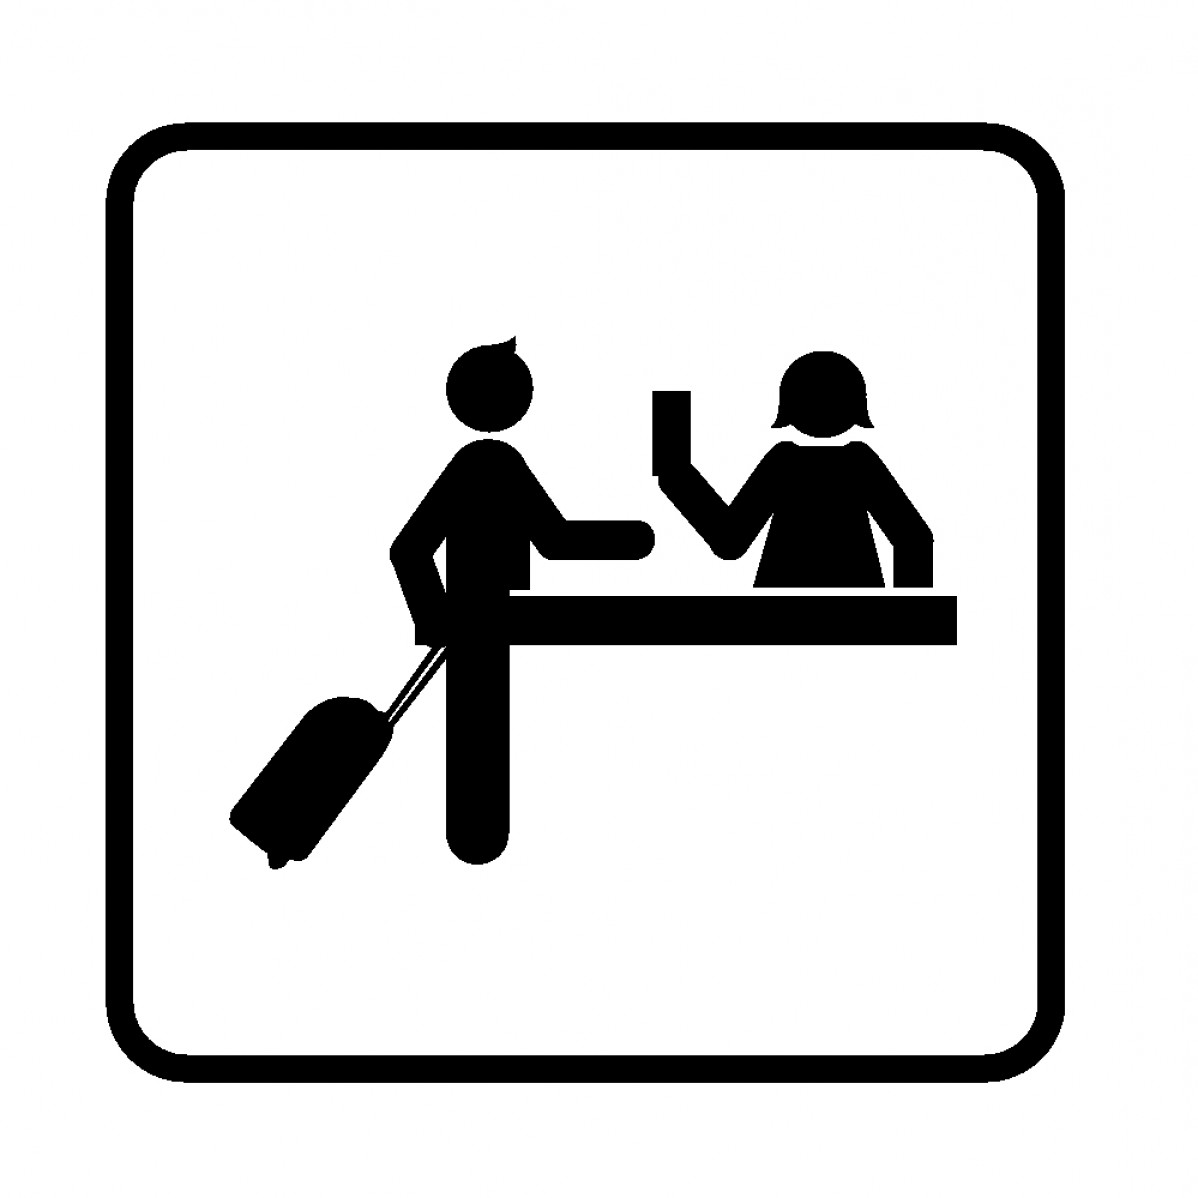 Clipart reception jpg freeuse library Reception clipart 6 » Clipart Station jpg freeuse library